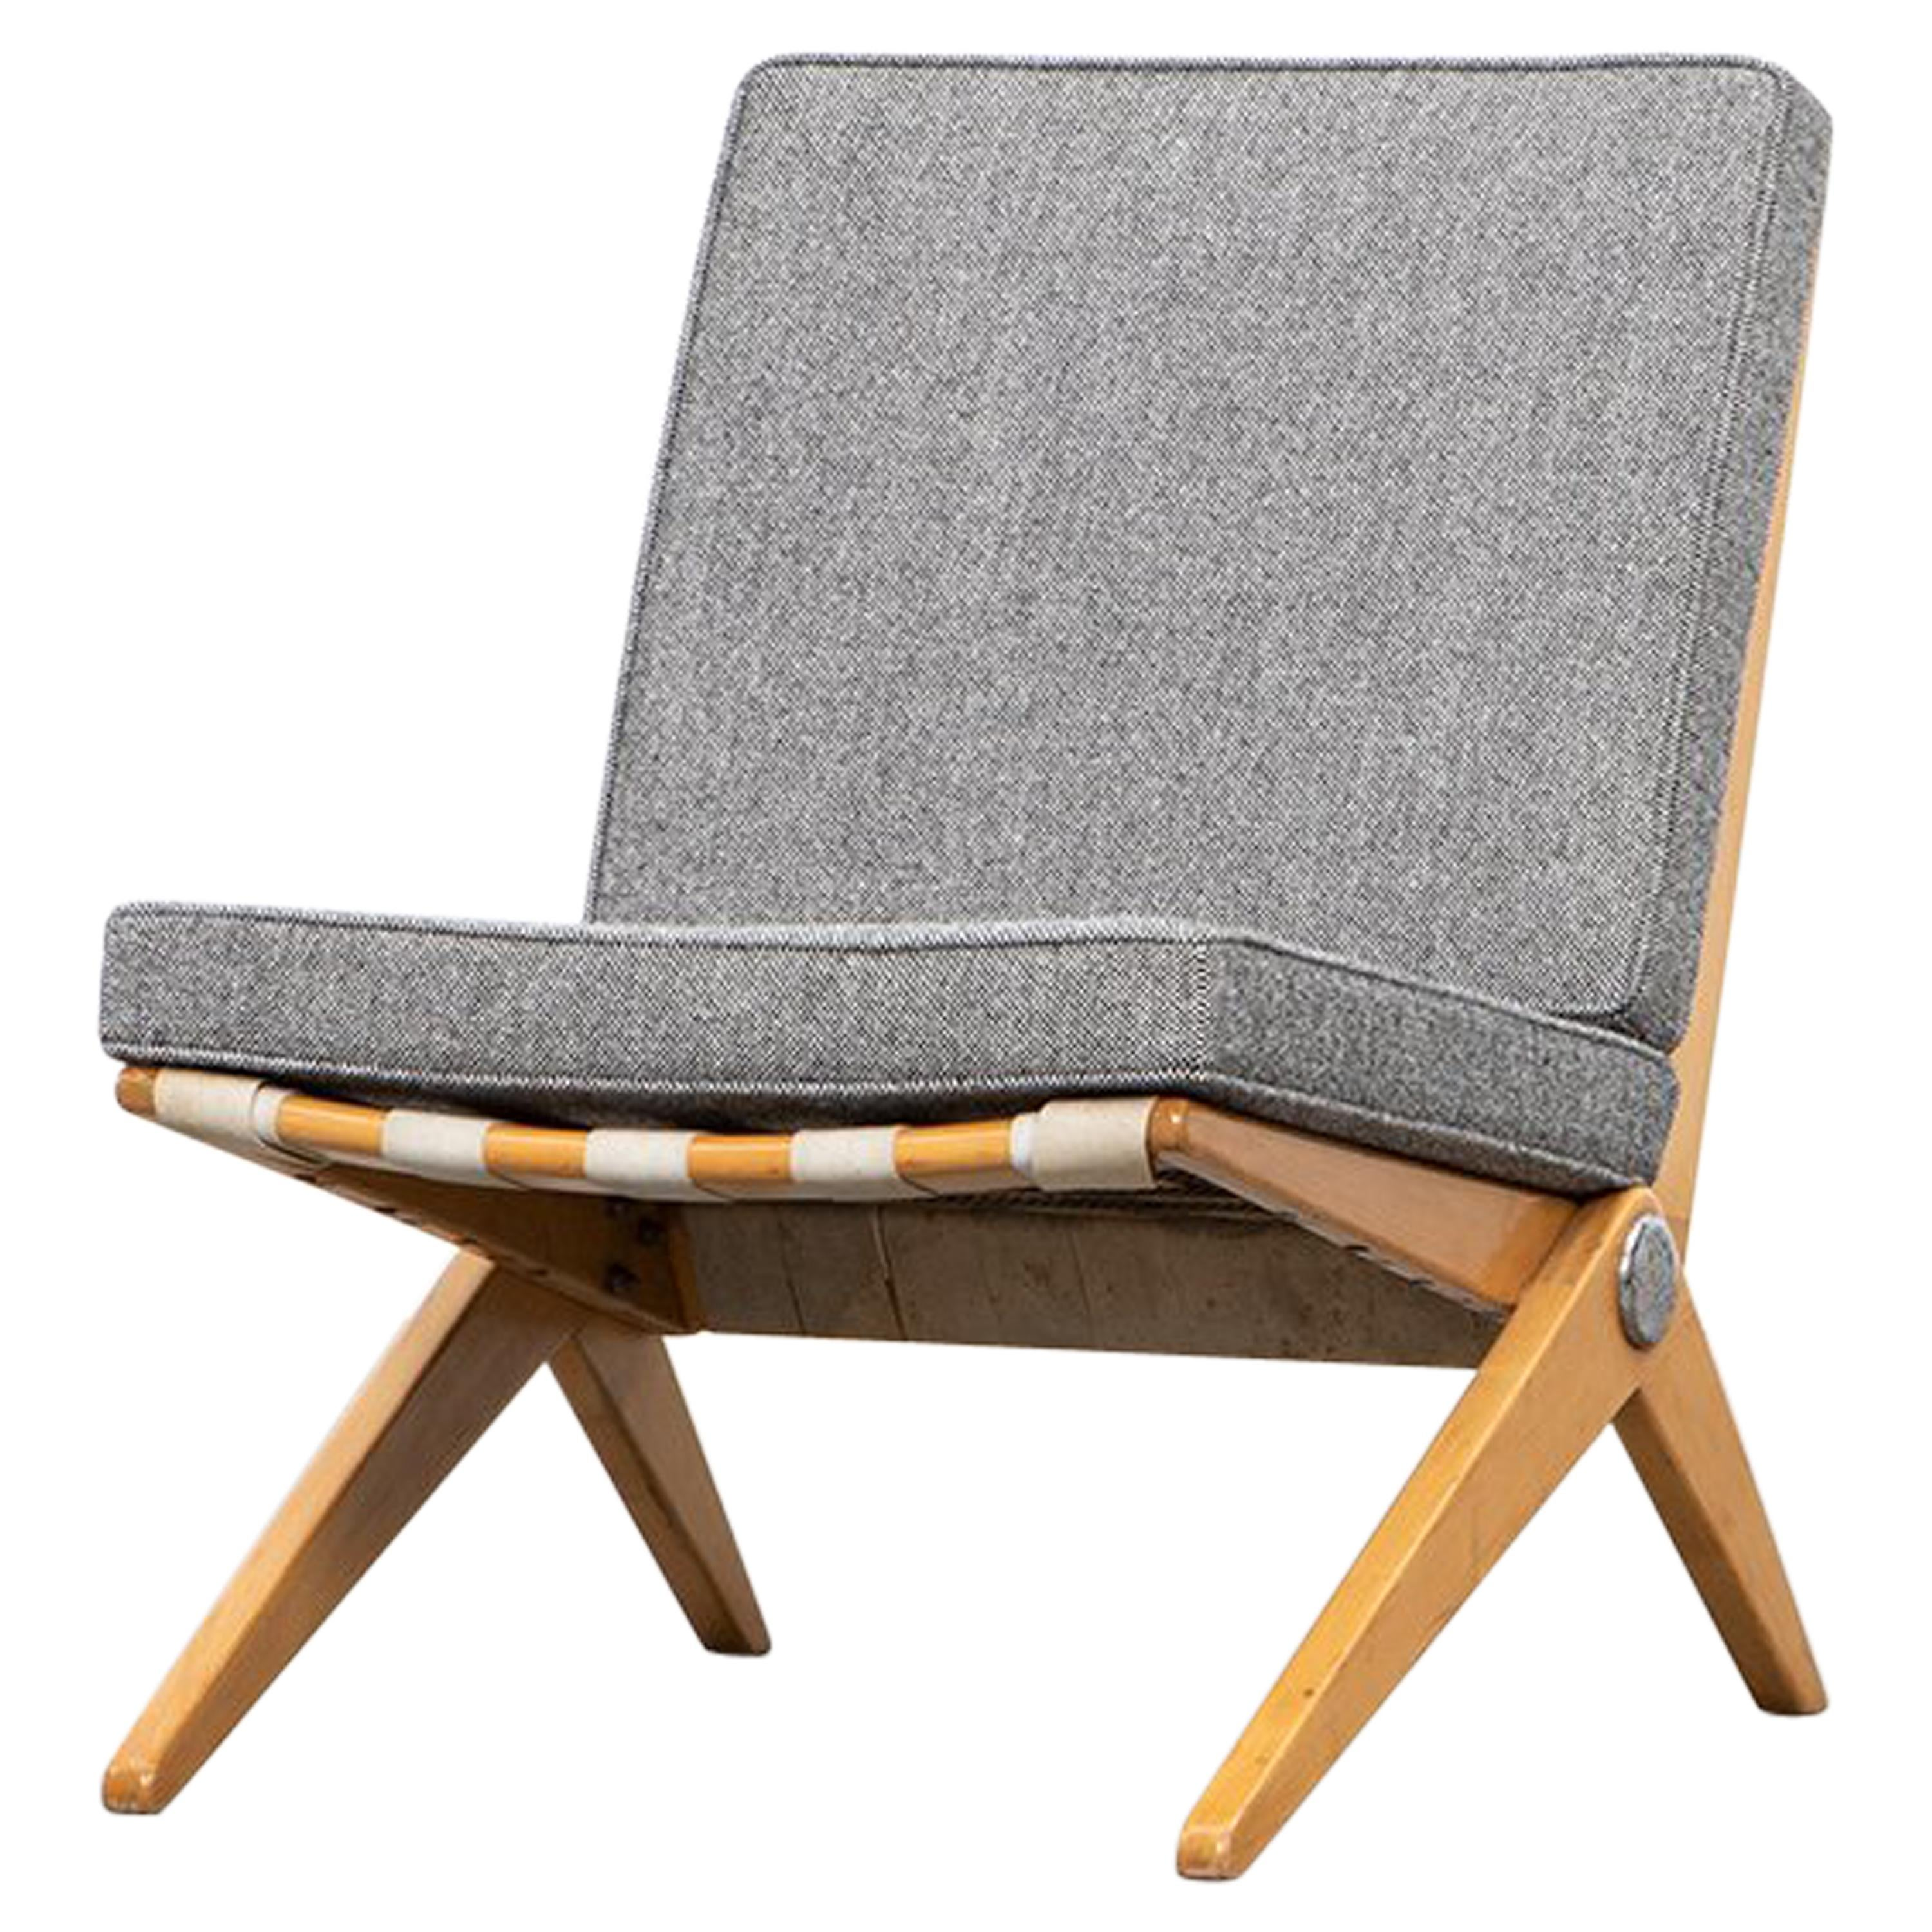 1950s Brown Wooden Easy Chair by Pierre Jeanneret 'd'